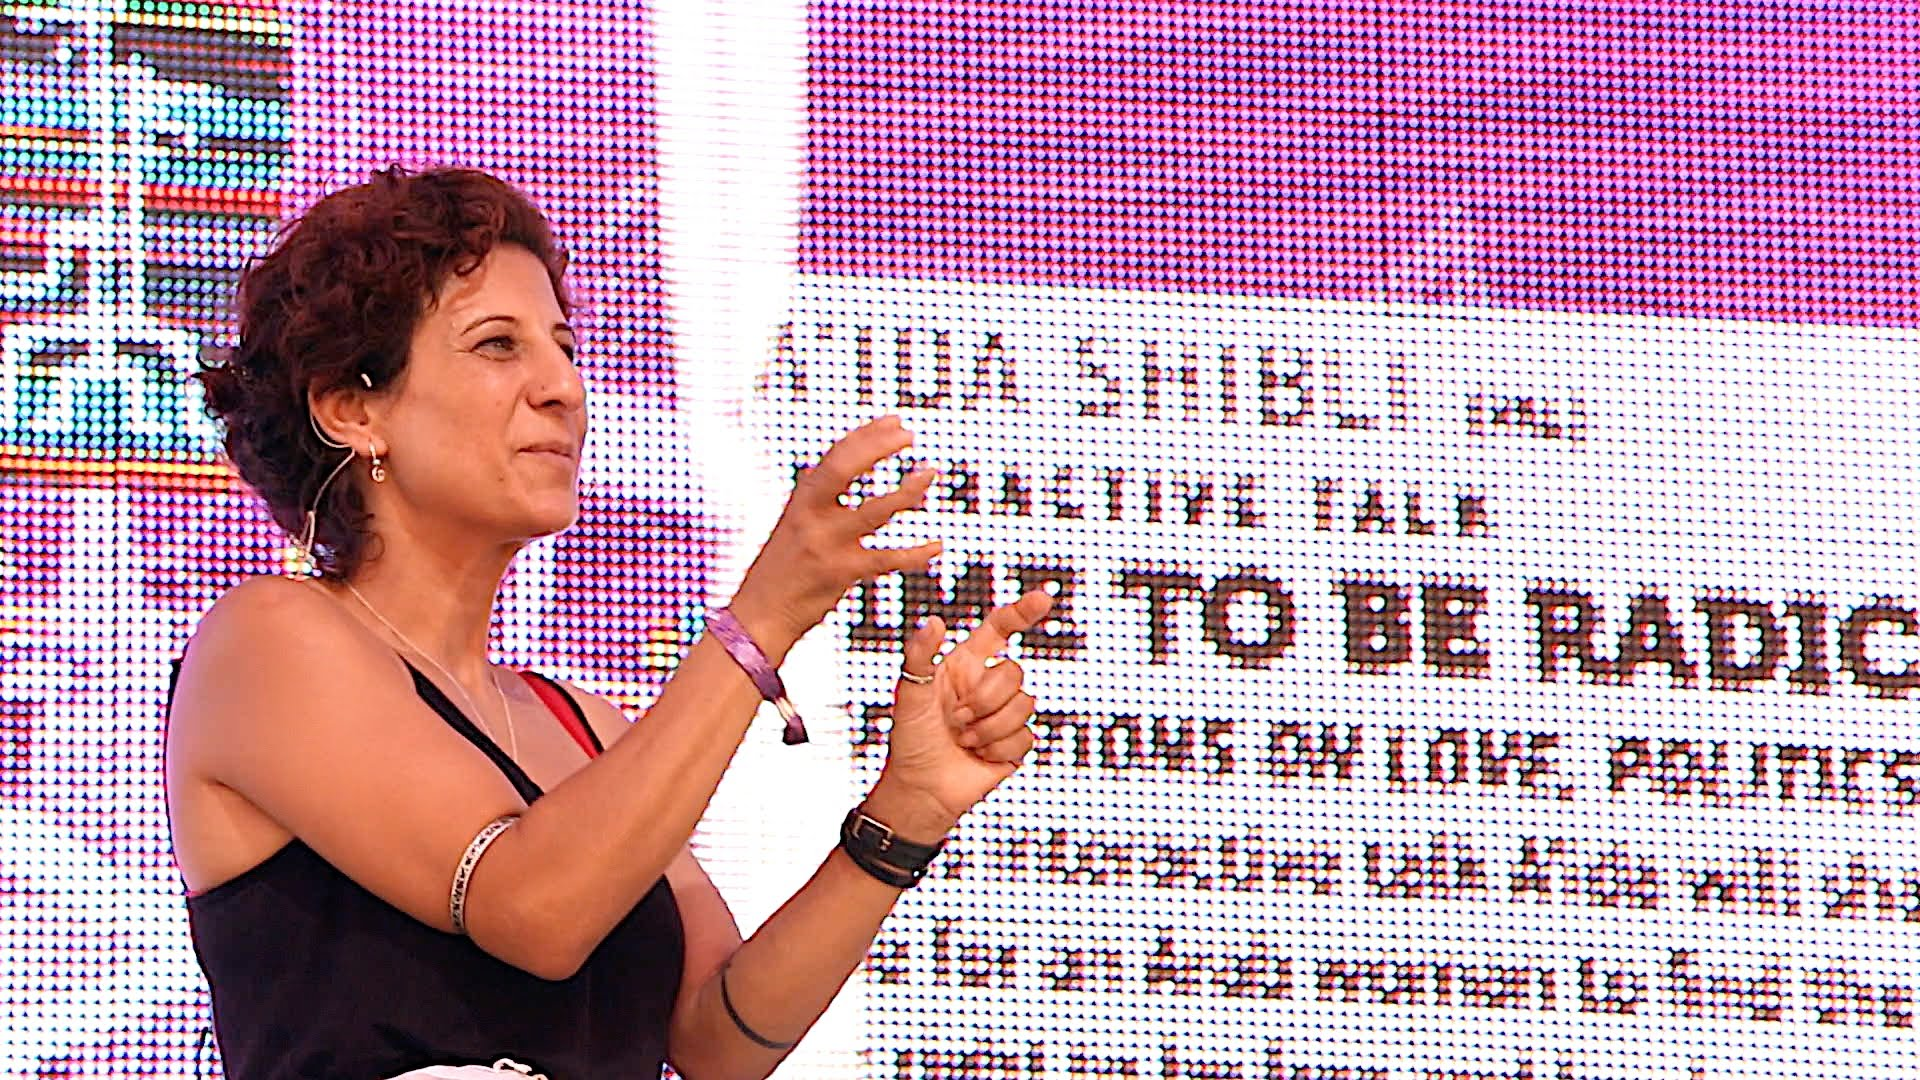 Aida speaking at Boom Festival 2014 in Portugal about political activism